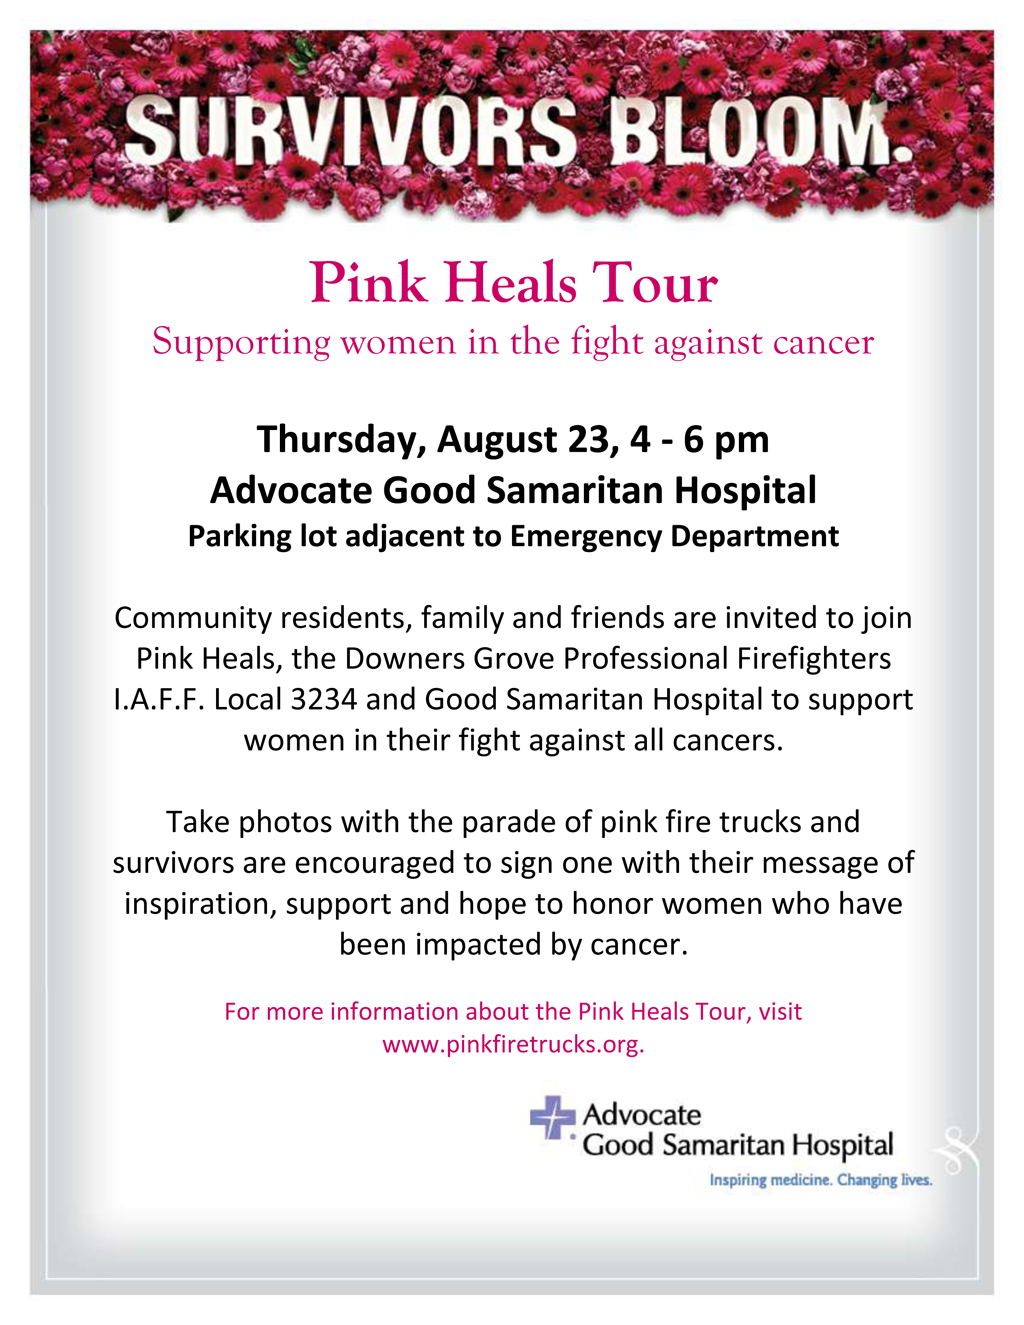 Pink Heals Tour in Downers Grove